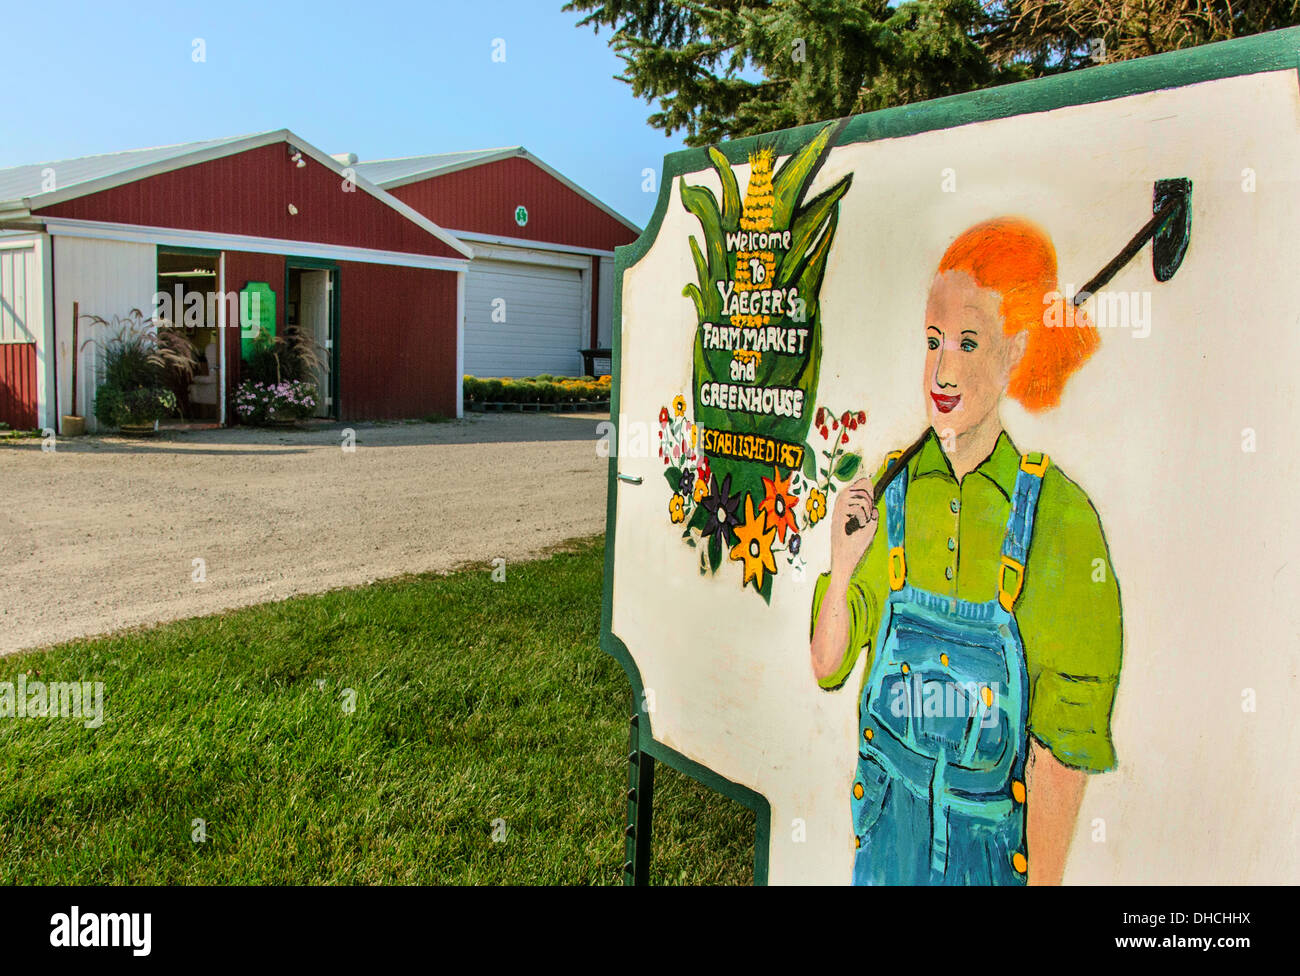 Sign for Yaeger's Farm Market near DeKalb, Illinois, a town along the Lincoln Highway - Stock Image